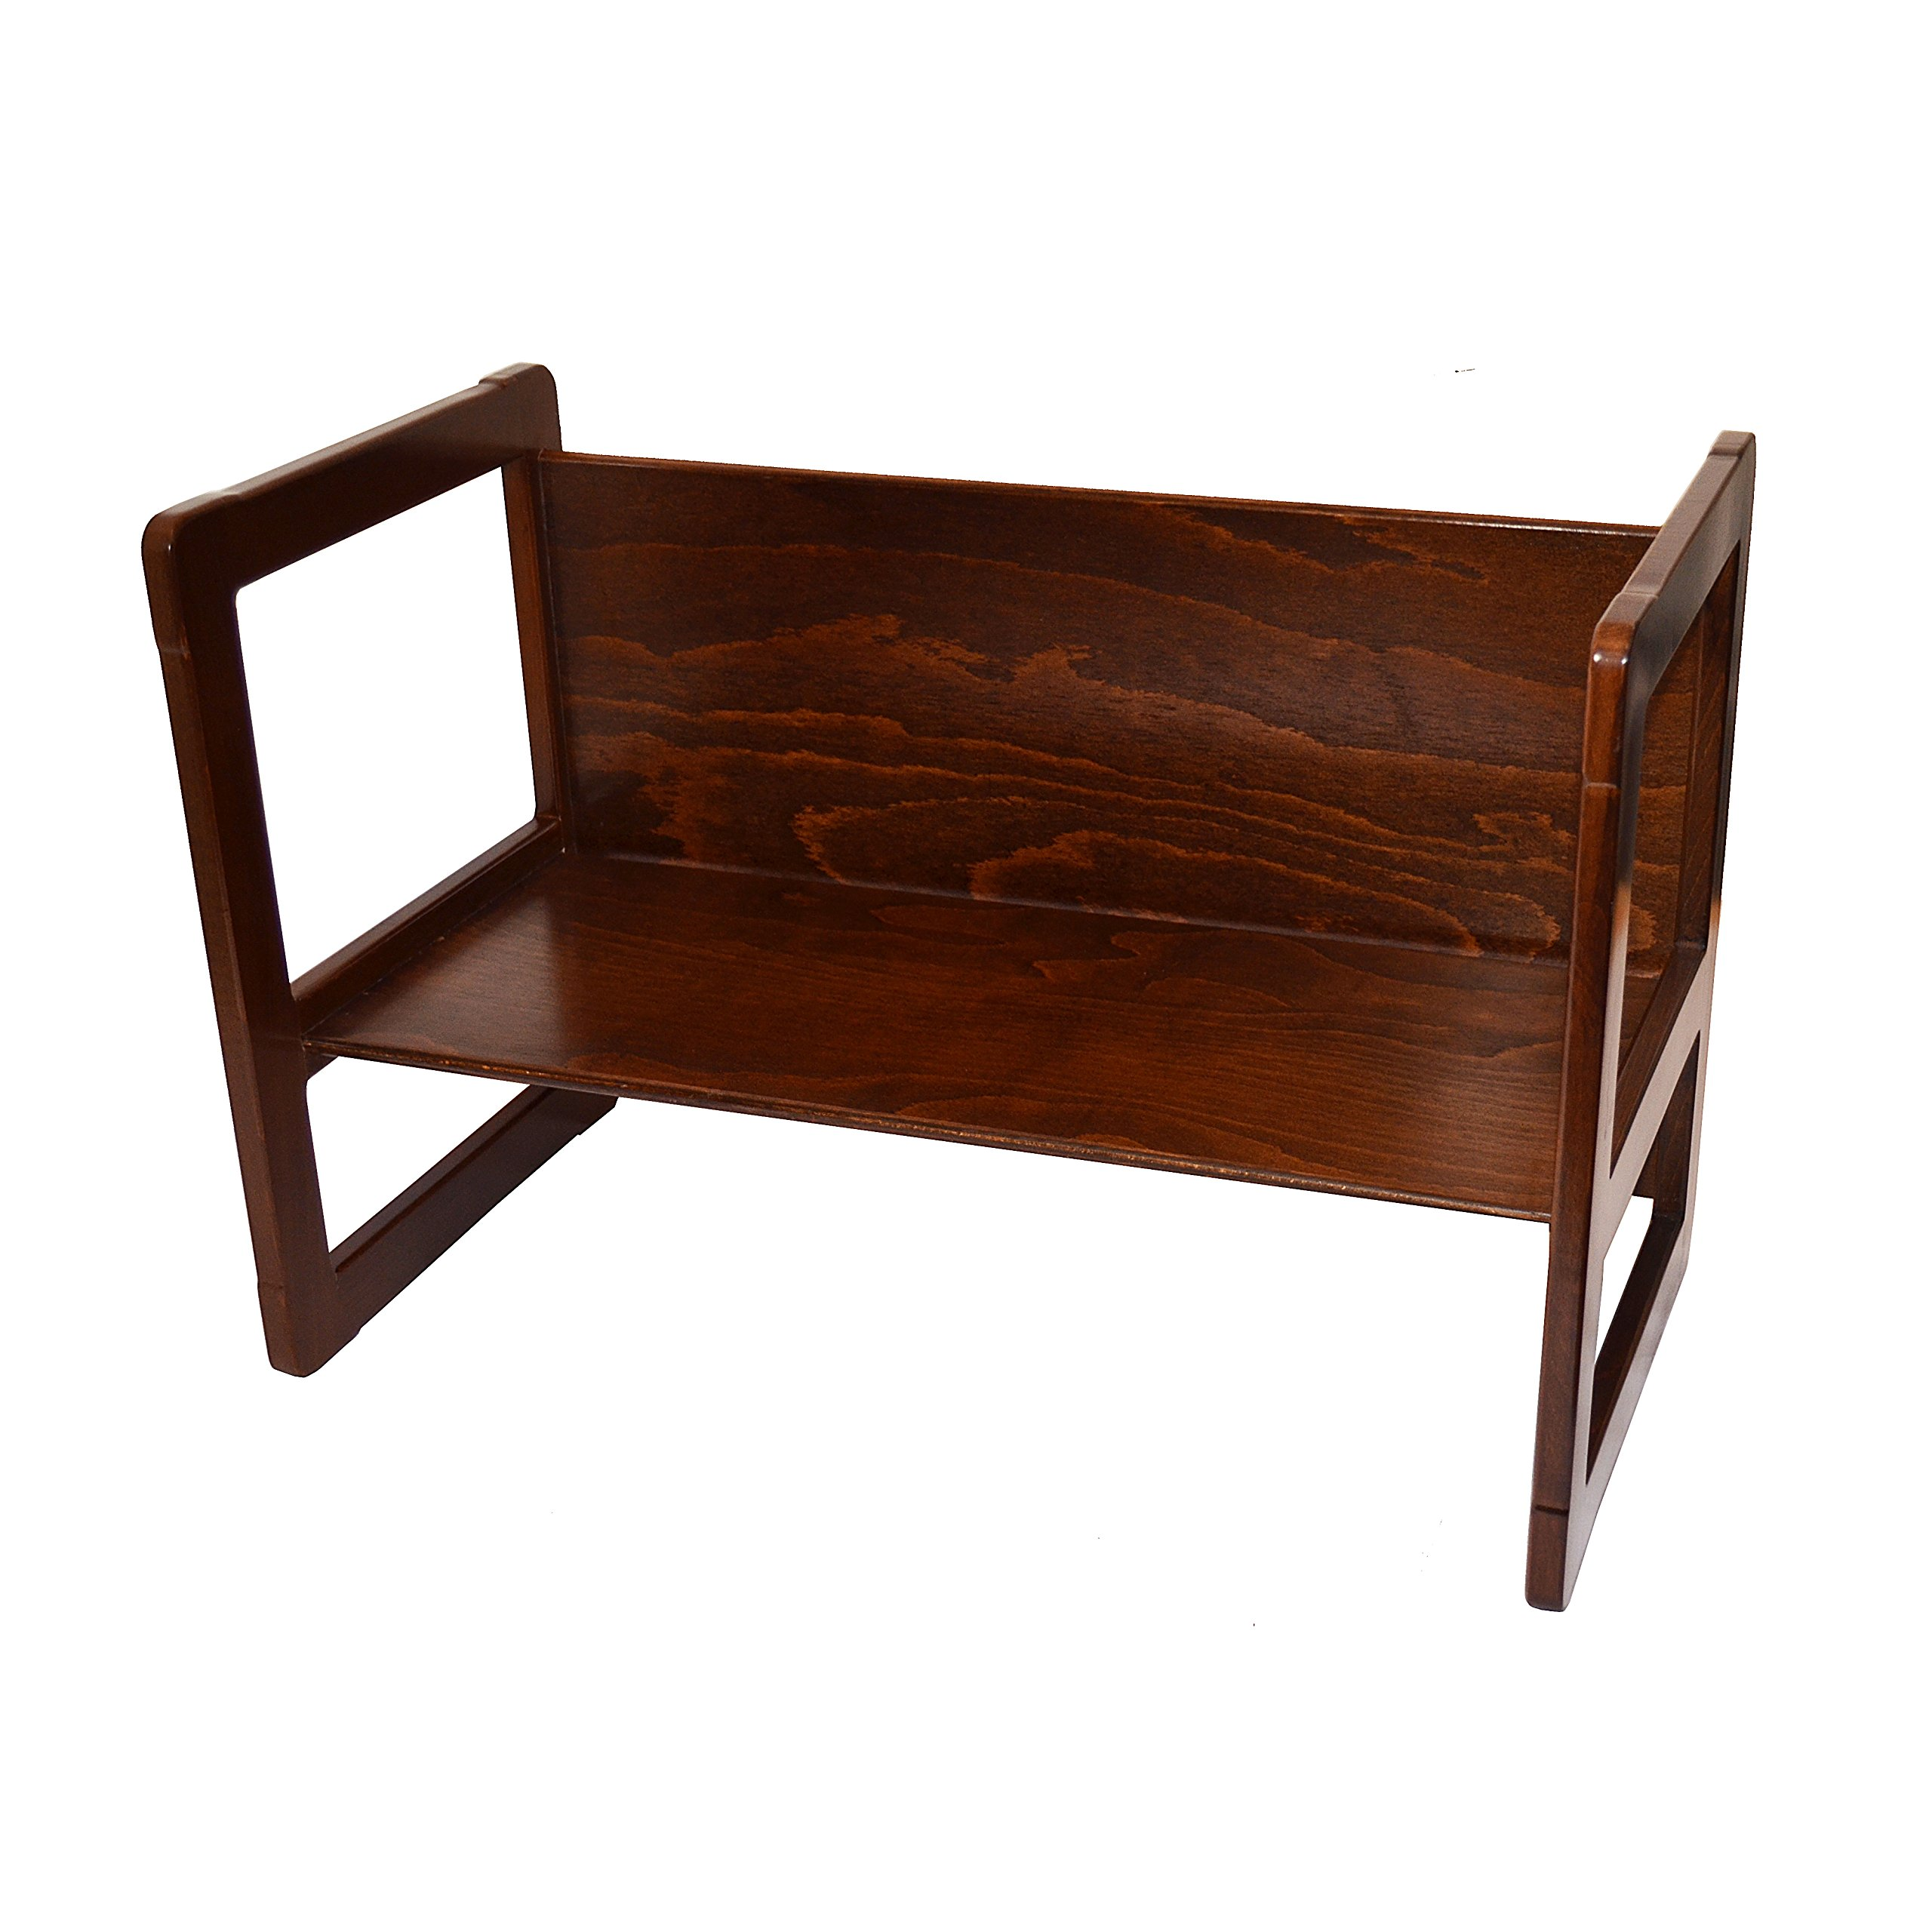 3 in 1 Childrens Furniture One Large Multifunctional Bench or Table Beech Wood, Dark Stained